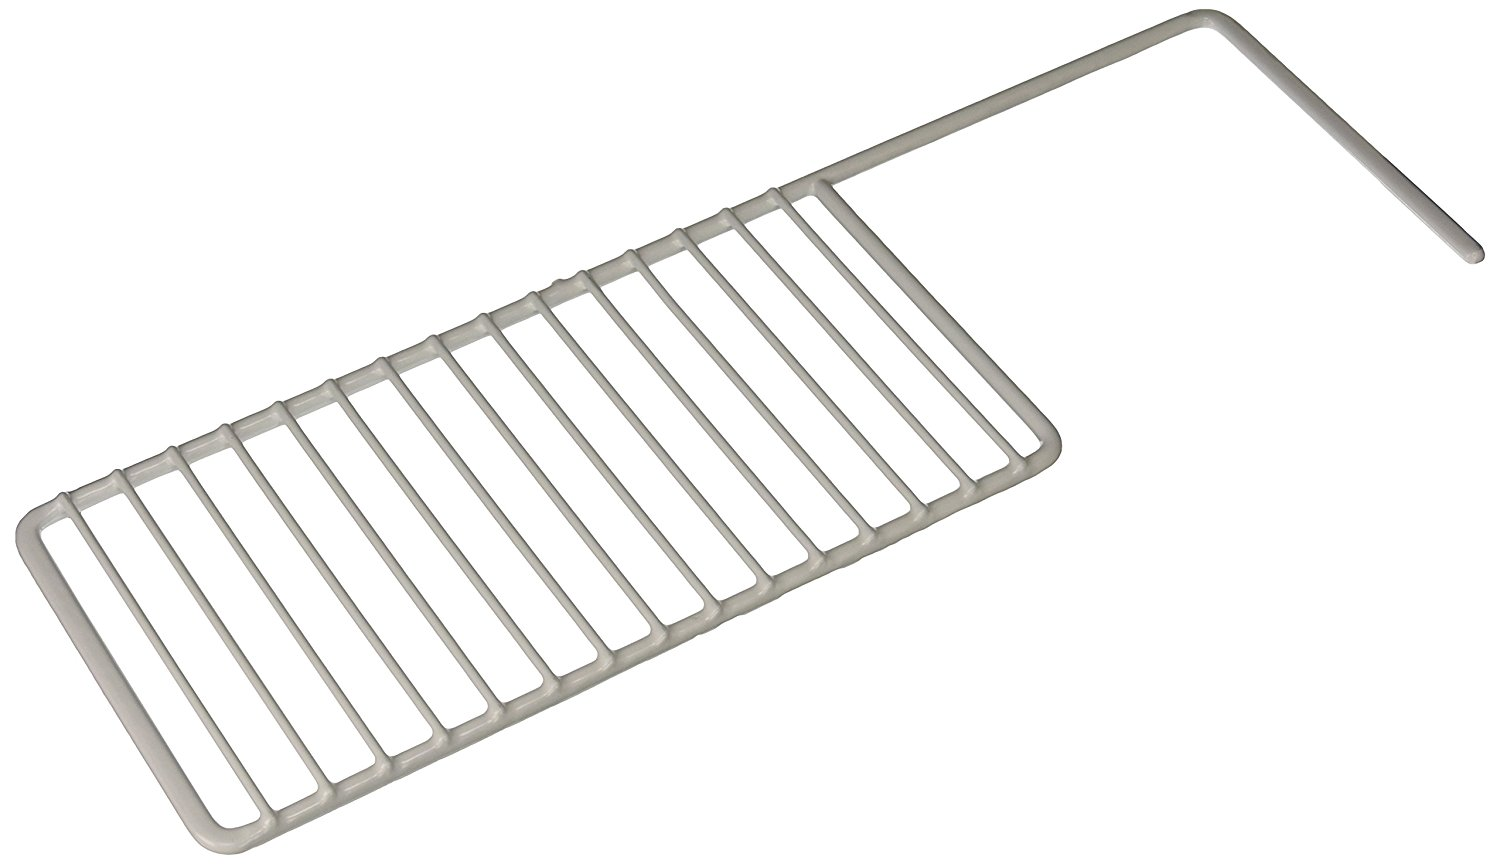 Norcold Replacement Refrigerator Wire Shelf W/ Cutout